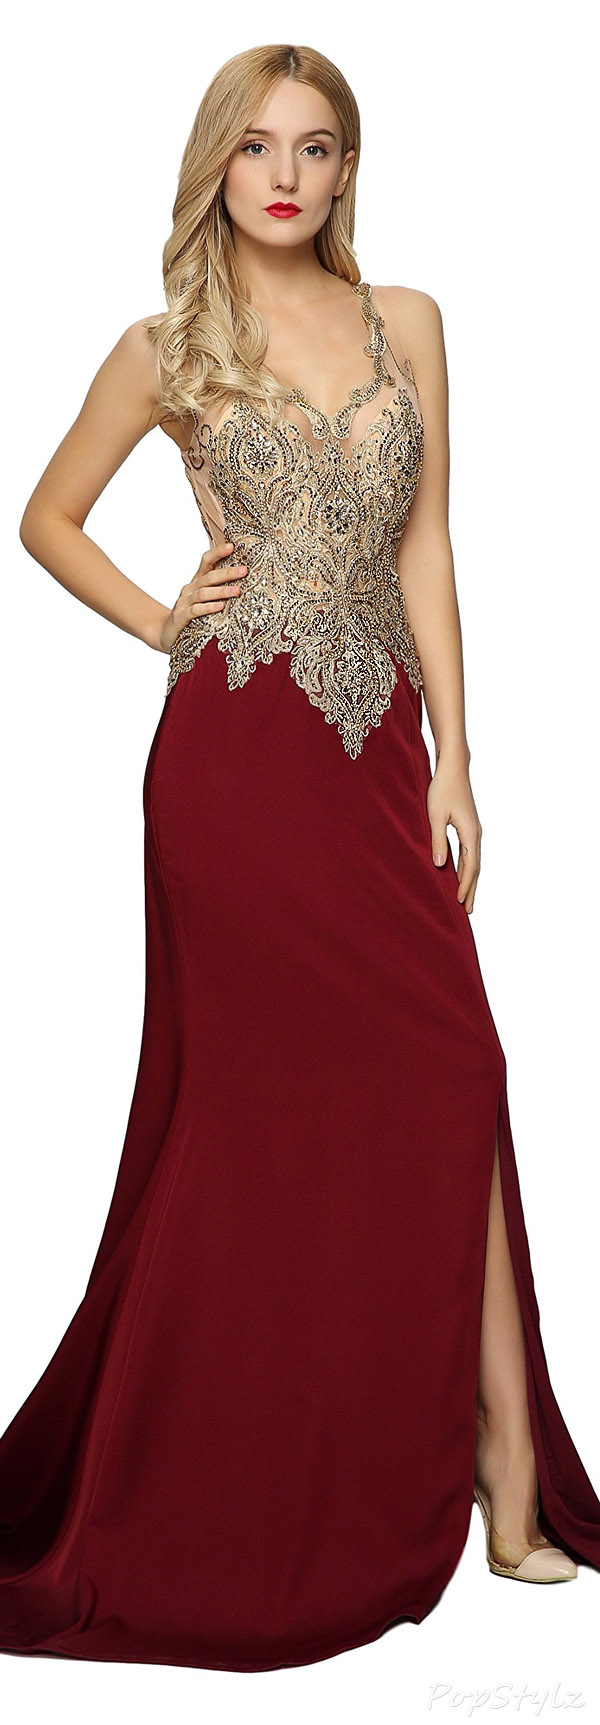 Meier Beaded Embroidered Sleeveless Evening Gown